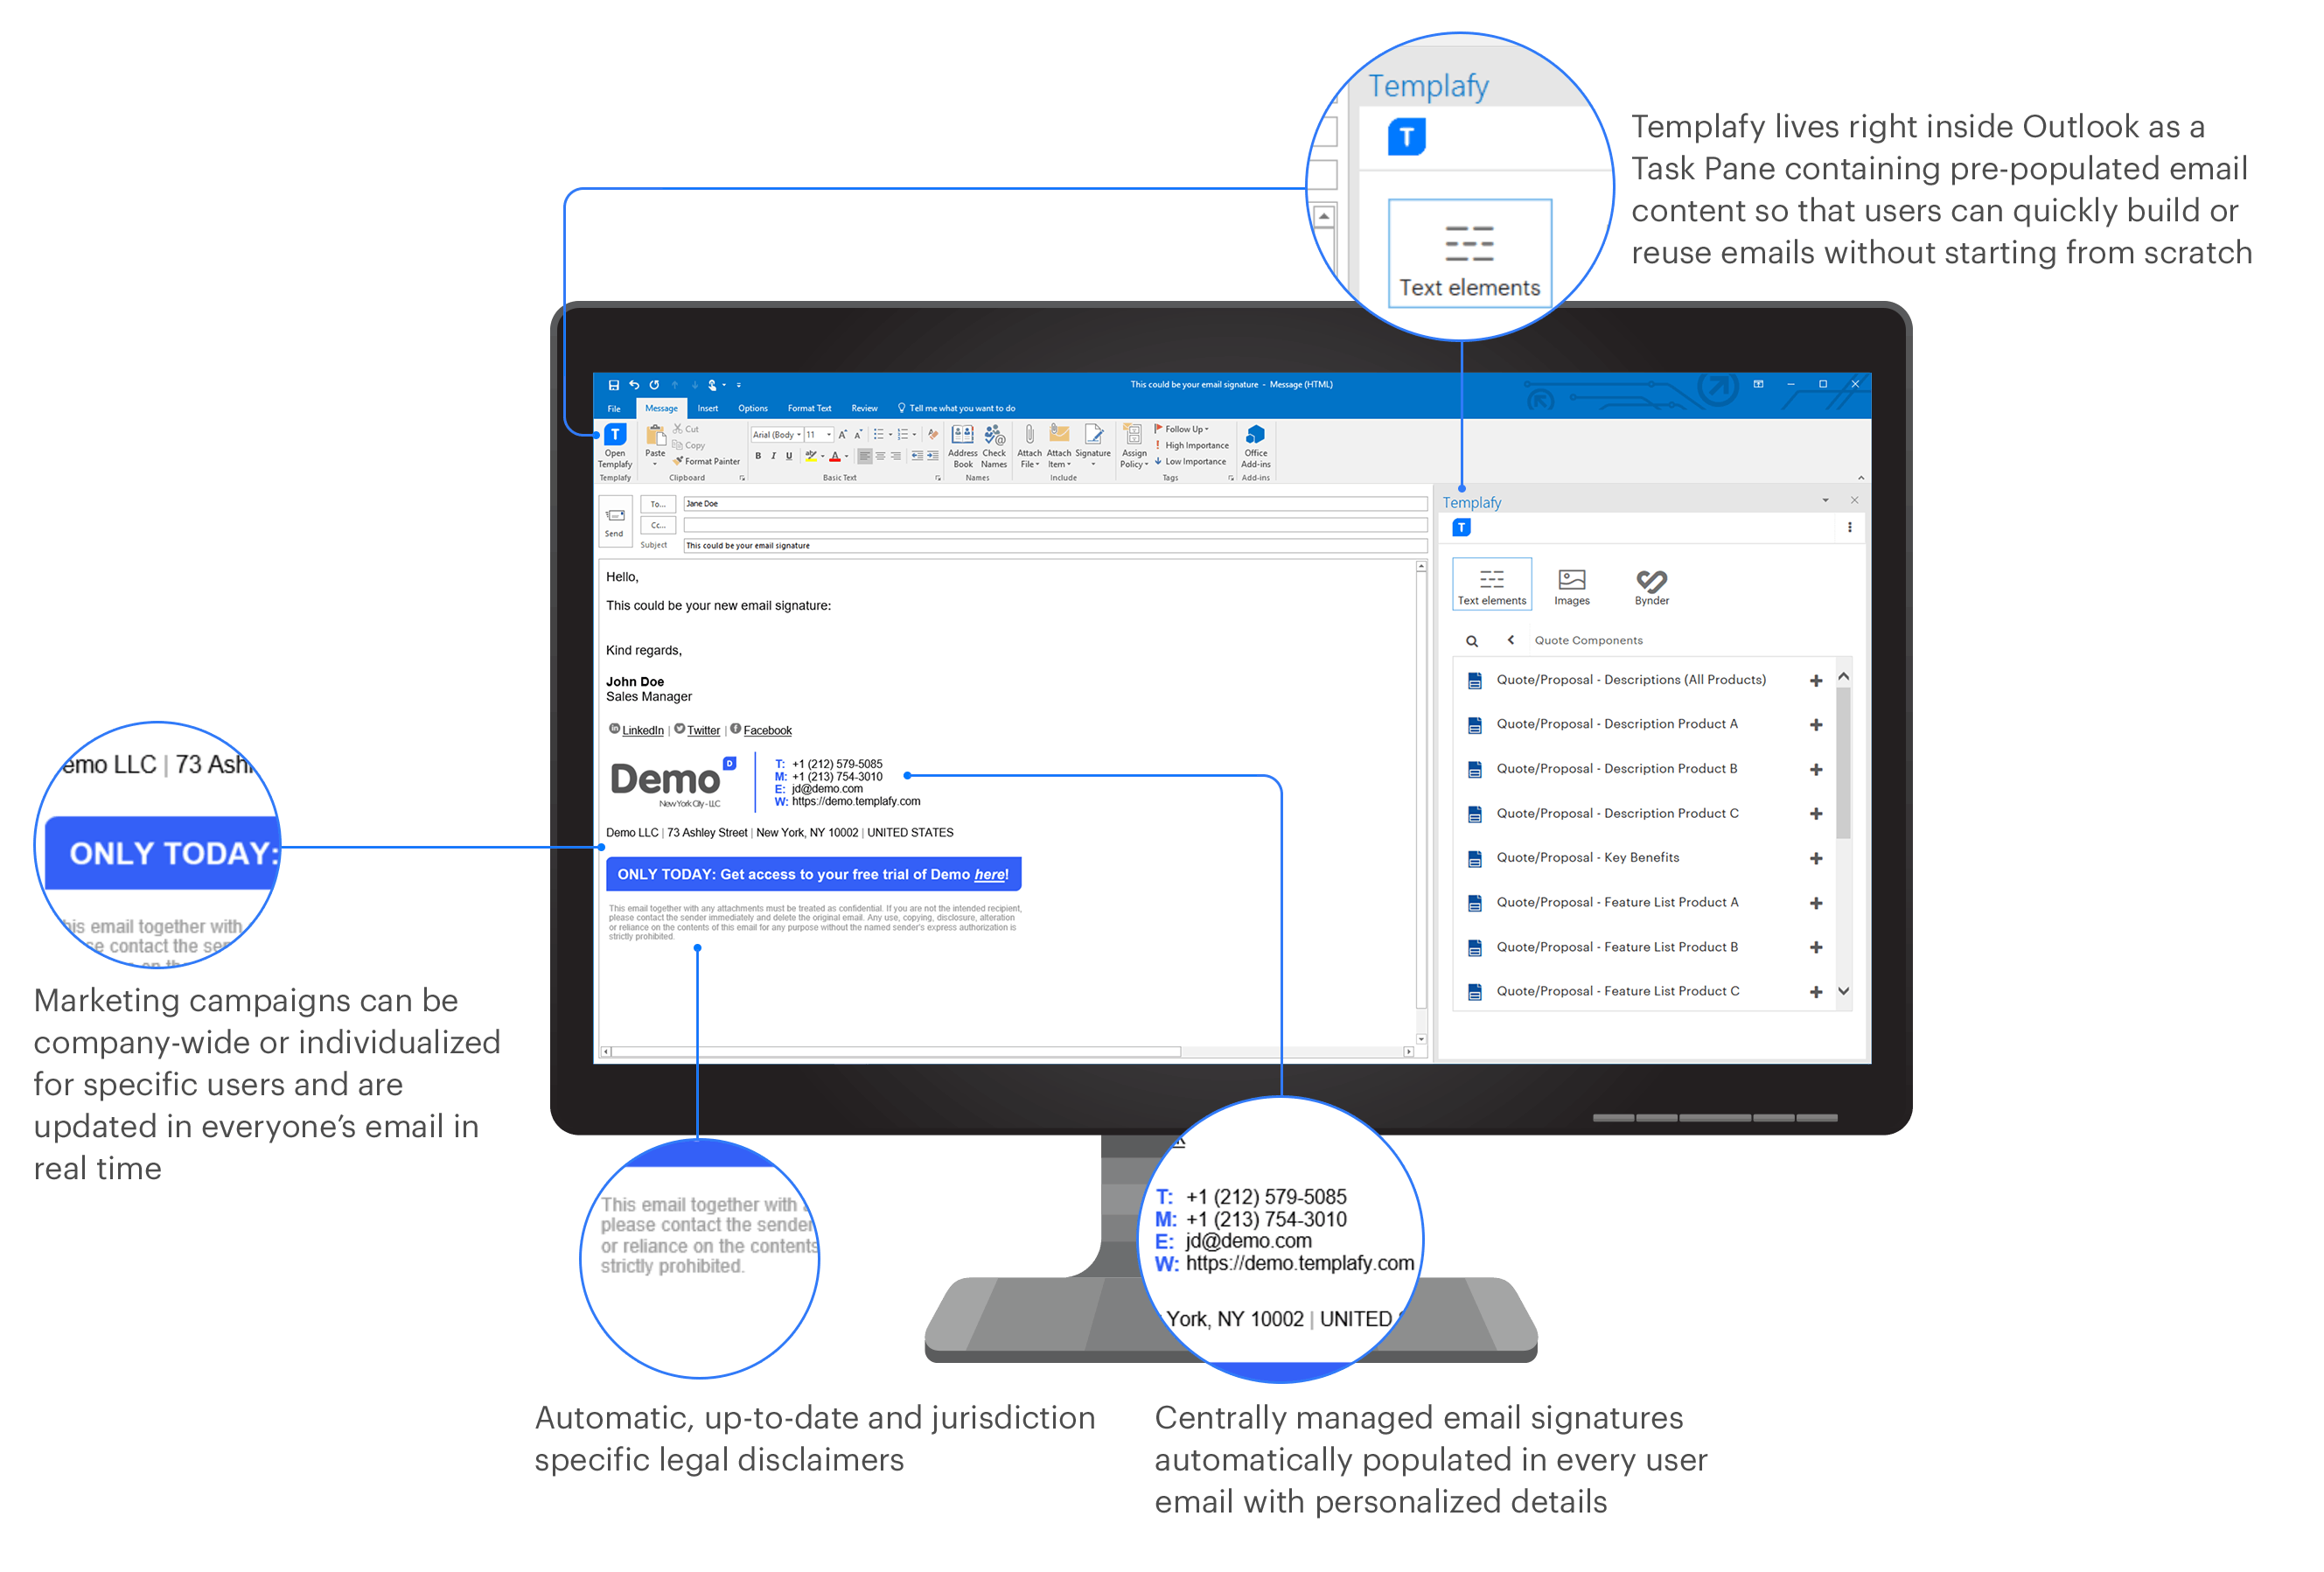 Templafy email productivity explained on desktop